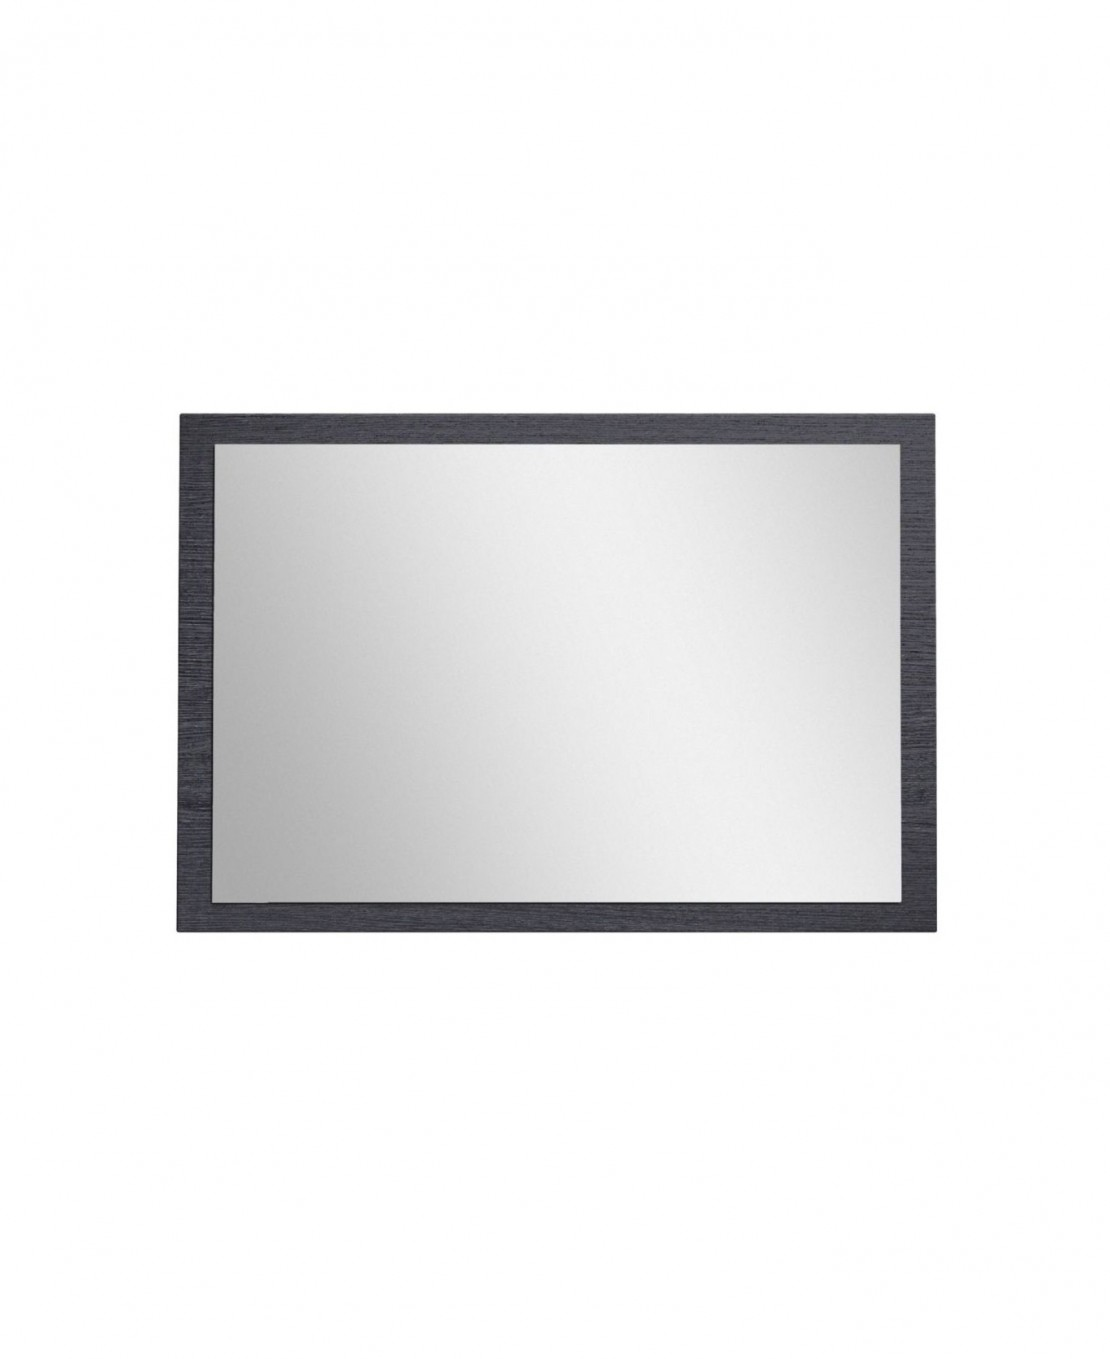 /_images/product-photos/kt-furniture-vardy-mirror-grey-a.jpg